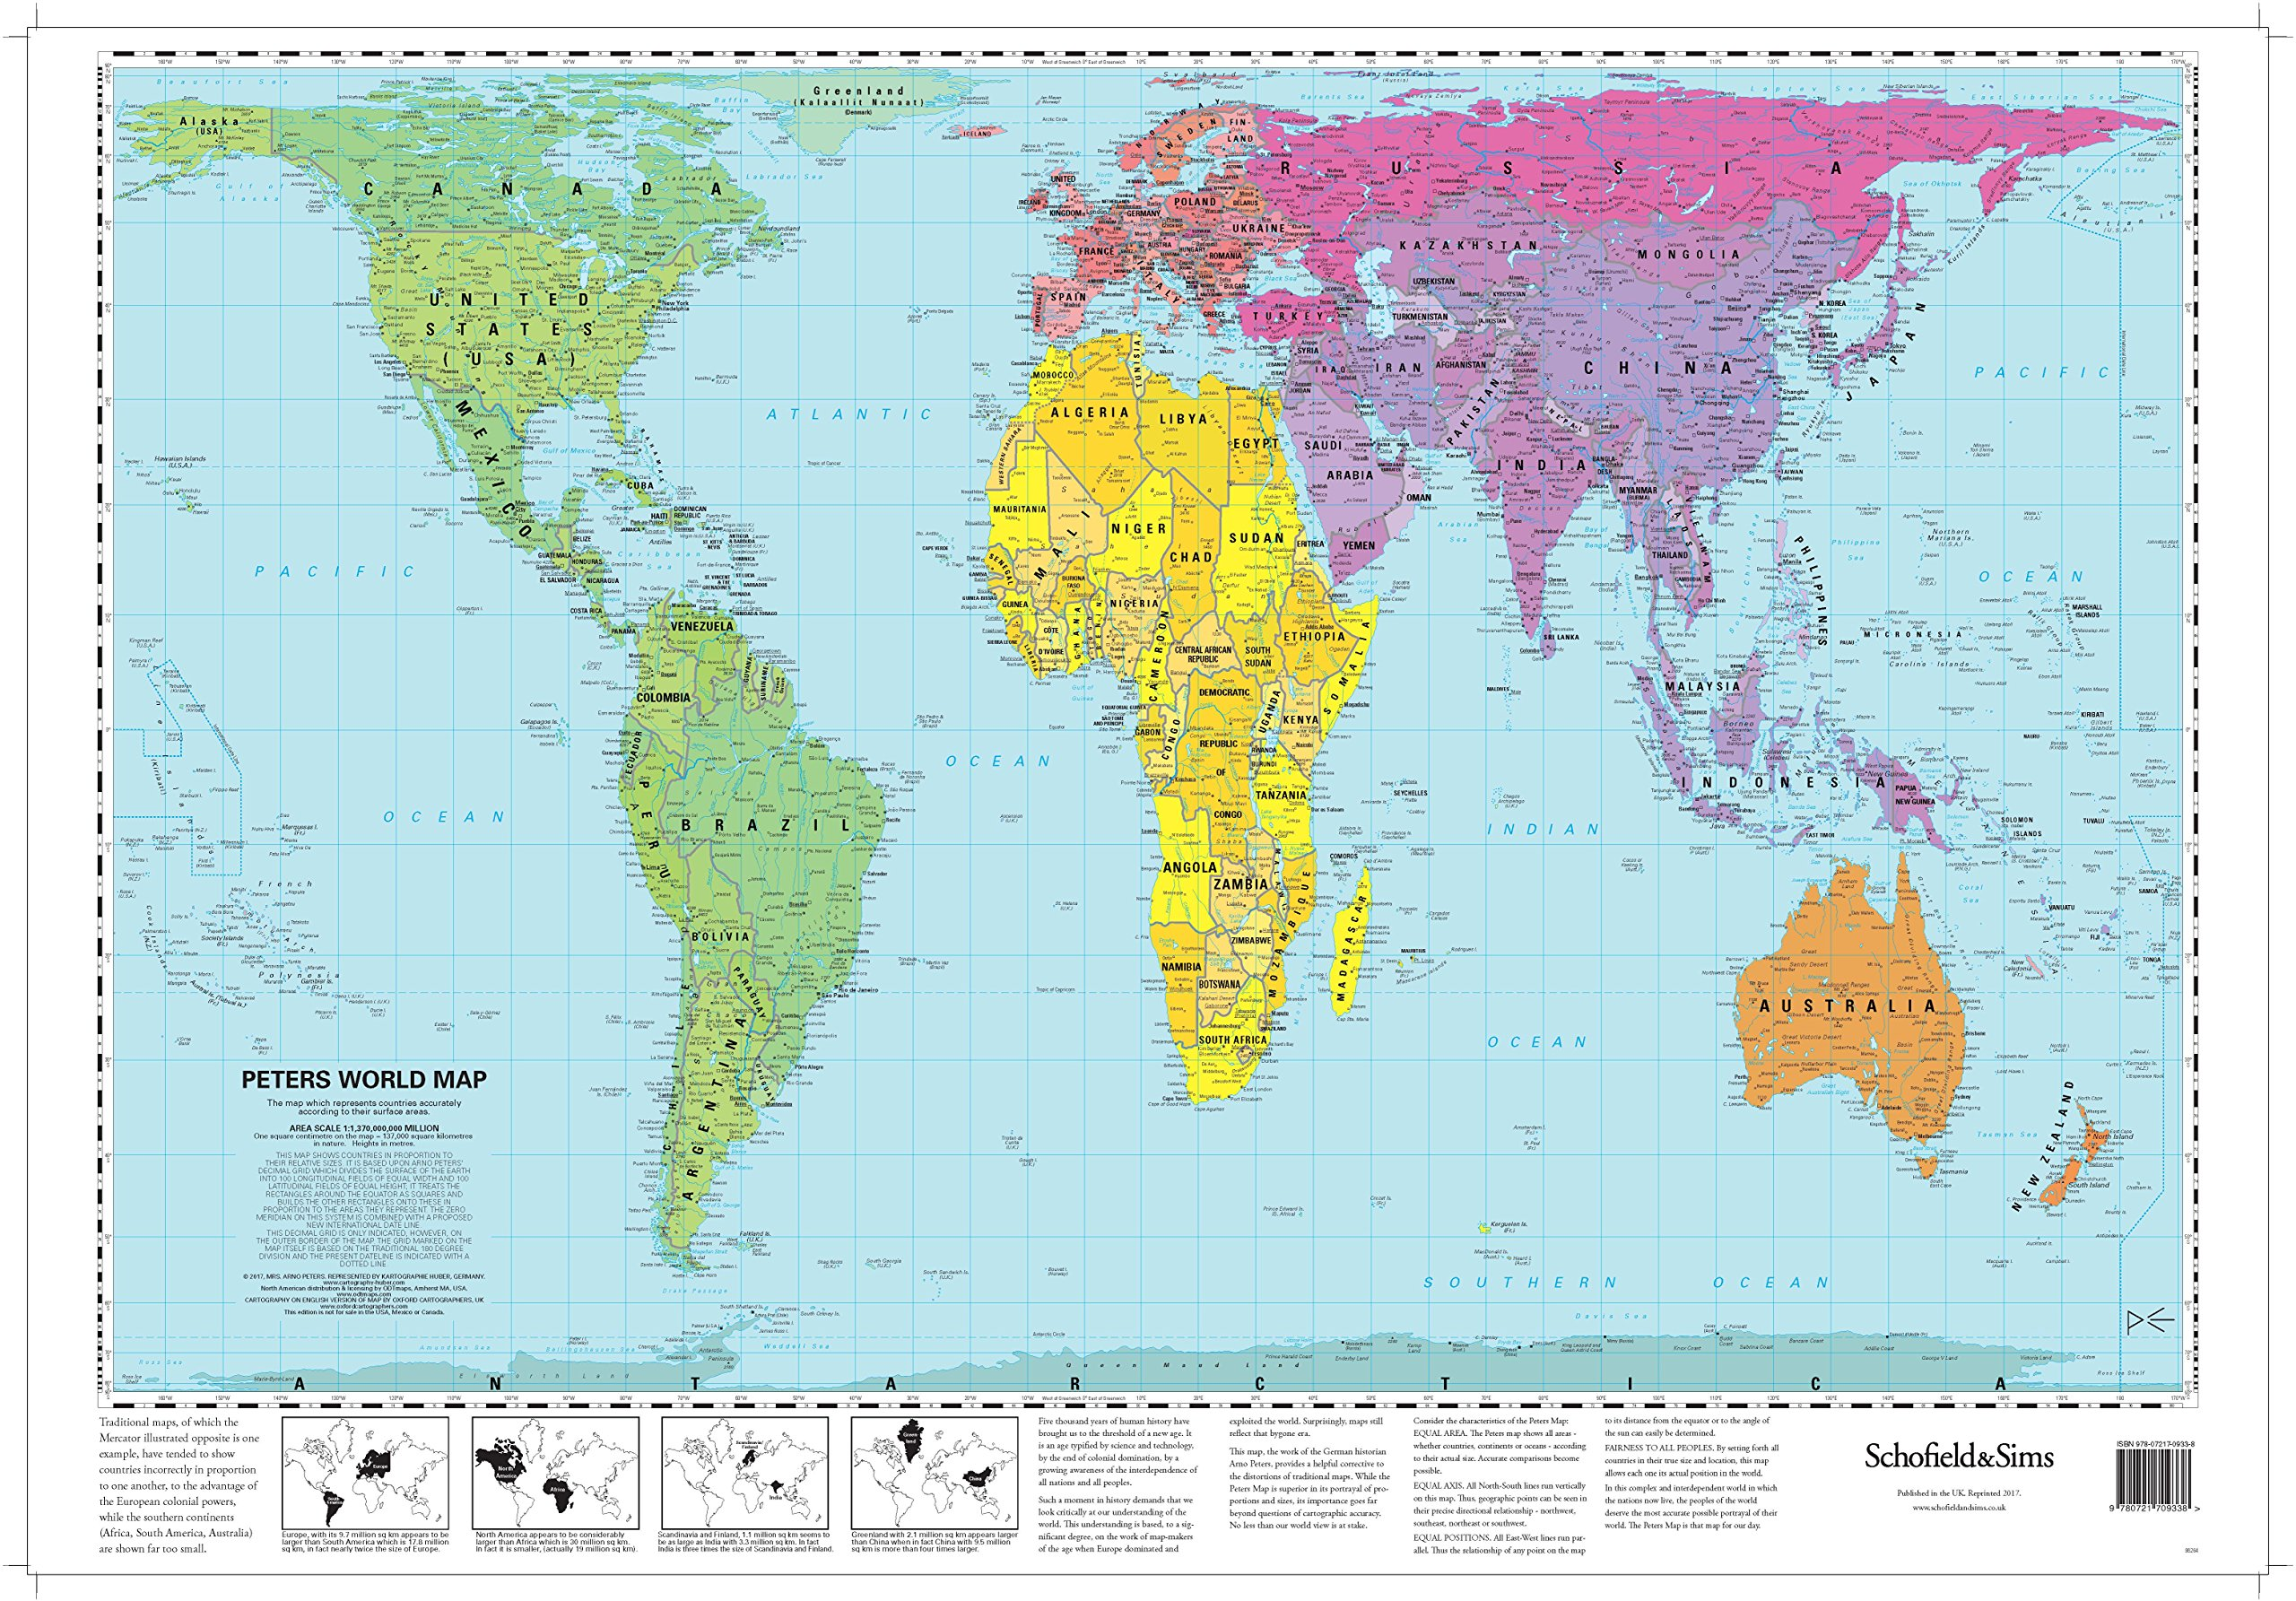 Peters world map laminated poster schofield sims 8601404371486 peters world map laminated poster schofield sims 8601404371486 amazon books gumiabroncs Images